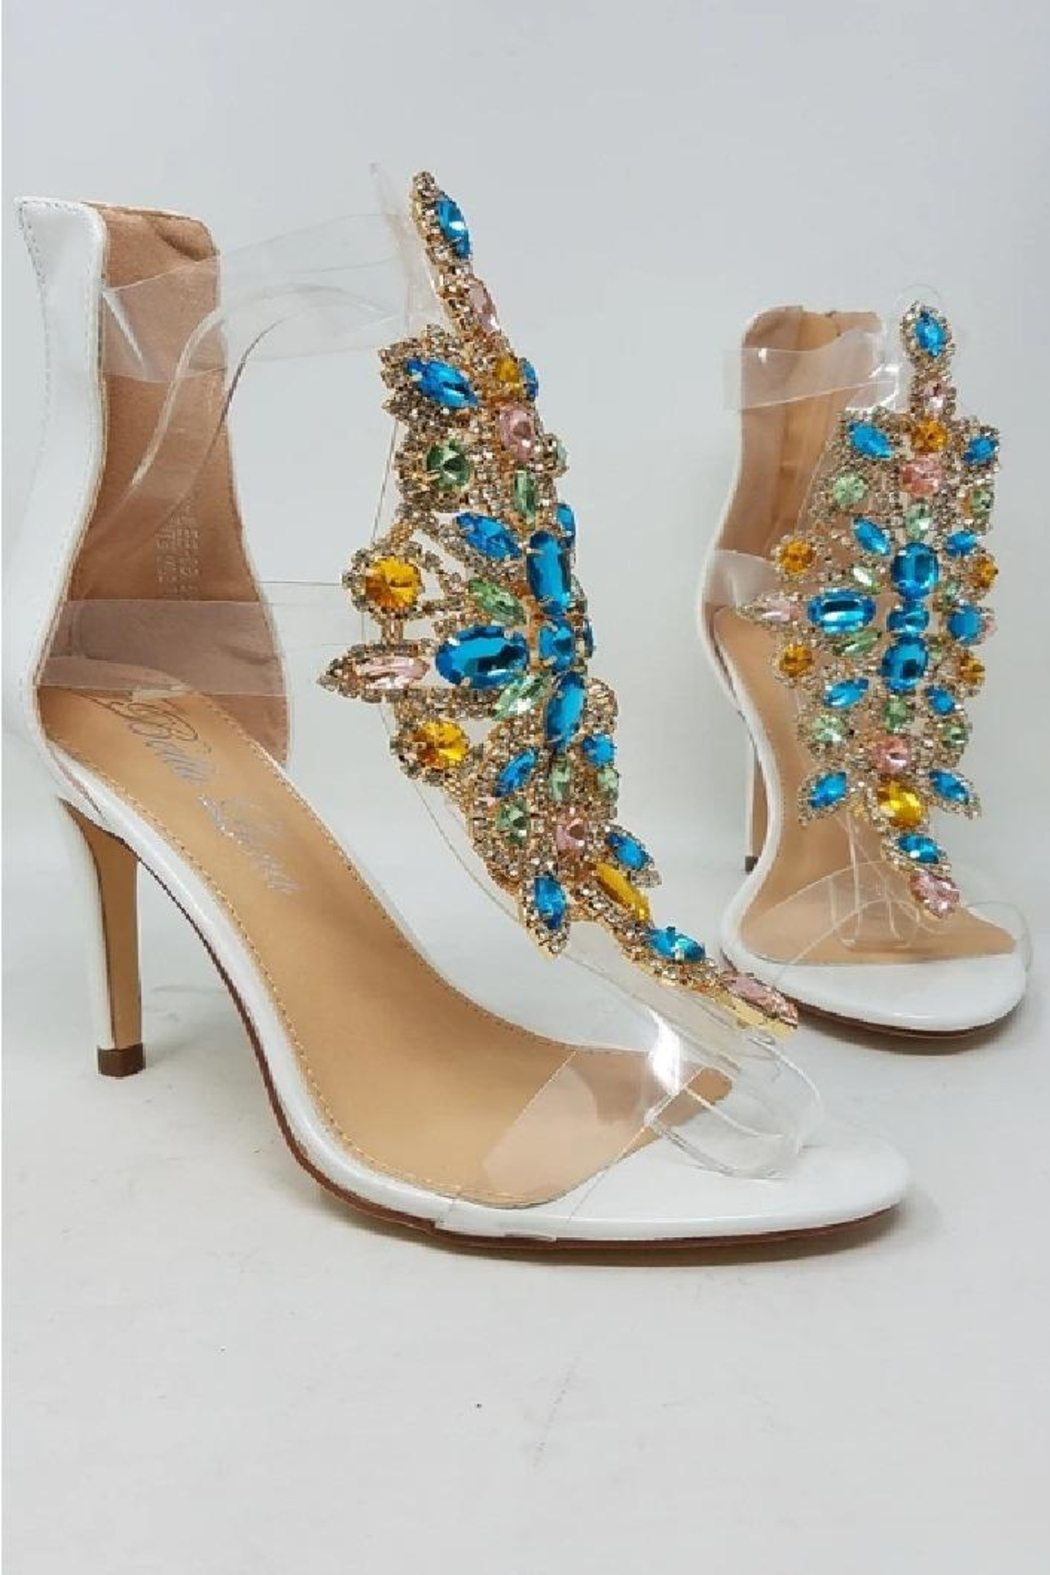 Bella Luna by Springland Footwear Rylee-08 Bella Luna Rhinestone Accent Transparent Straps Rear Zip Stiletto Heels White Multi - Front Full Image